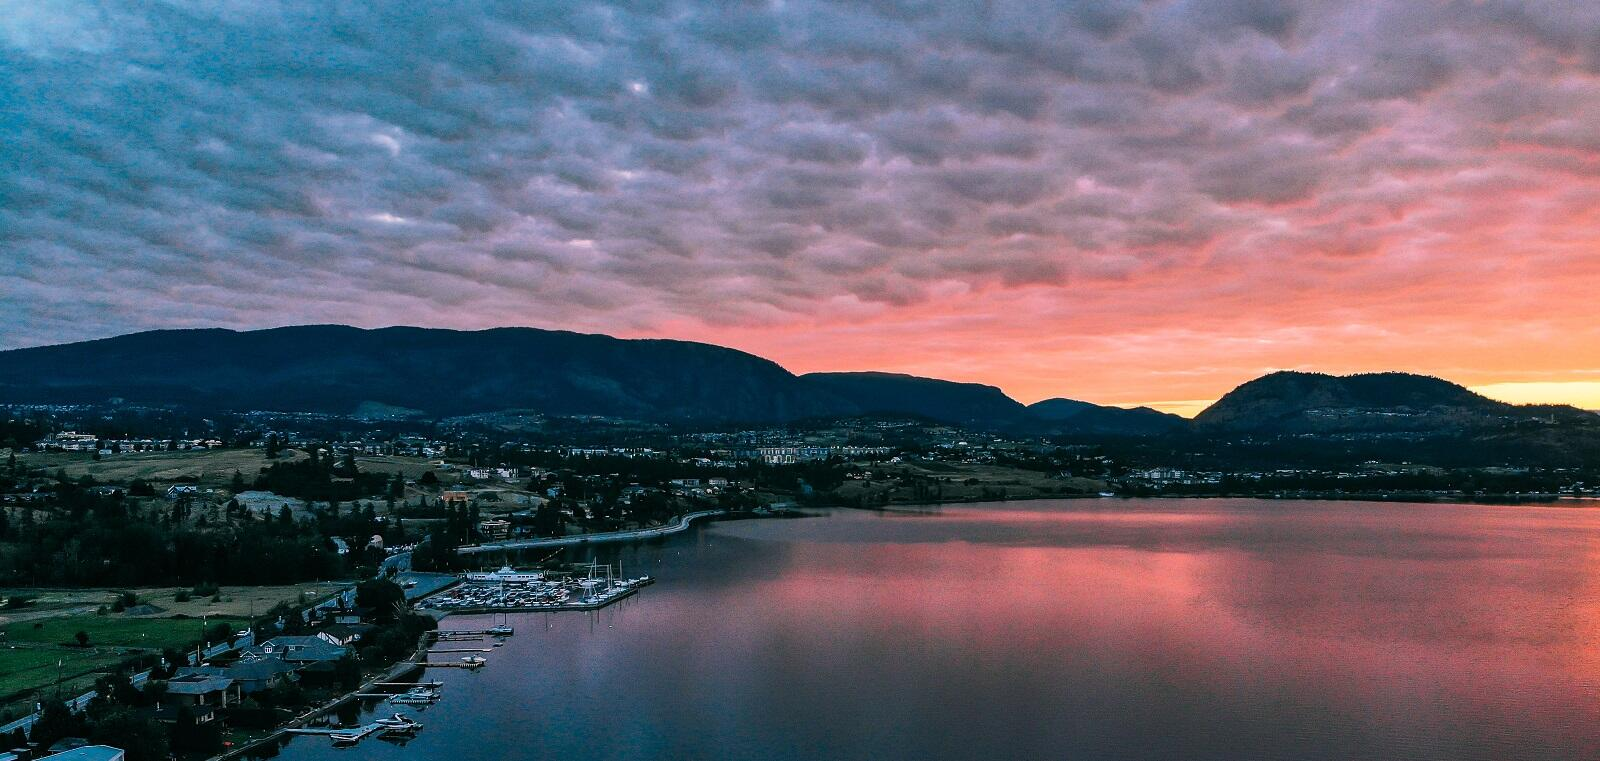 Sunset on Lake Kelowna